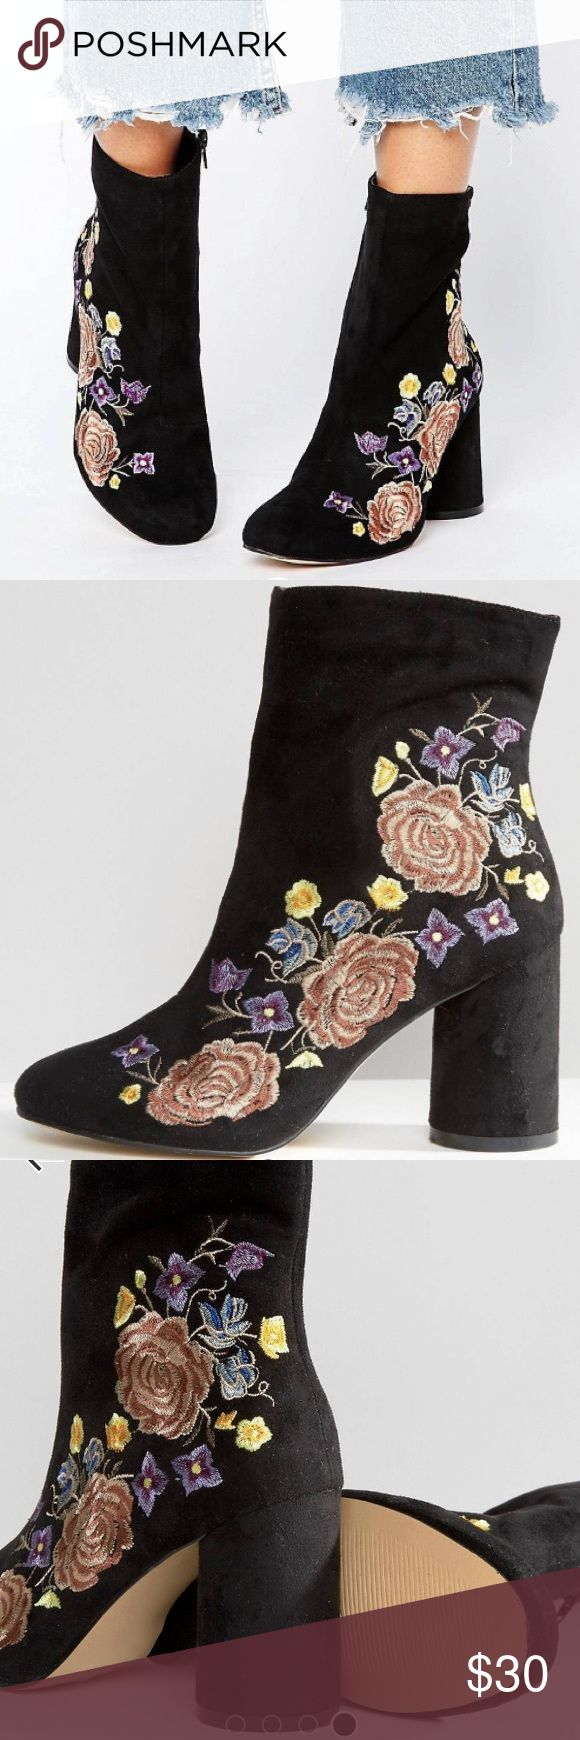 River Island embroidered ankle boots Super cute and trendy River Island ankle boots in black, round heel. Purchased new by me, never been worn. River Island Shoes Ankle Boots & Booties